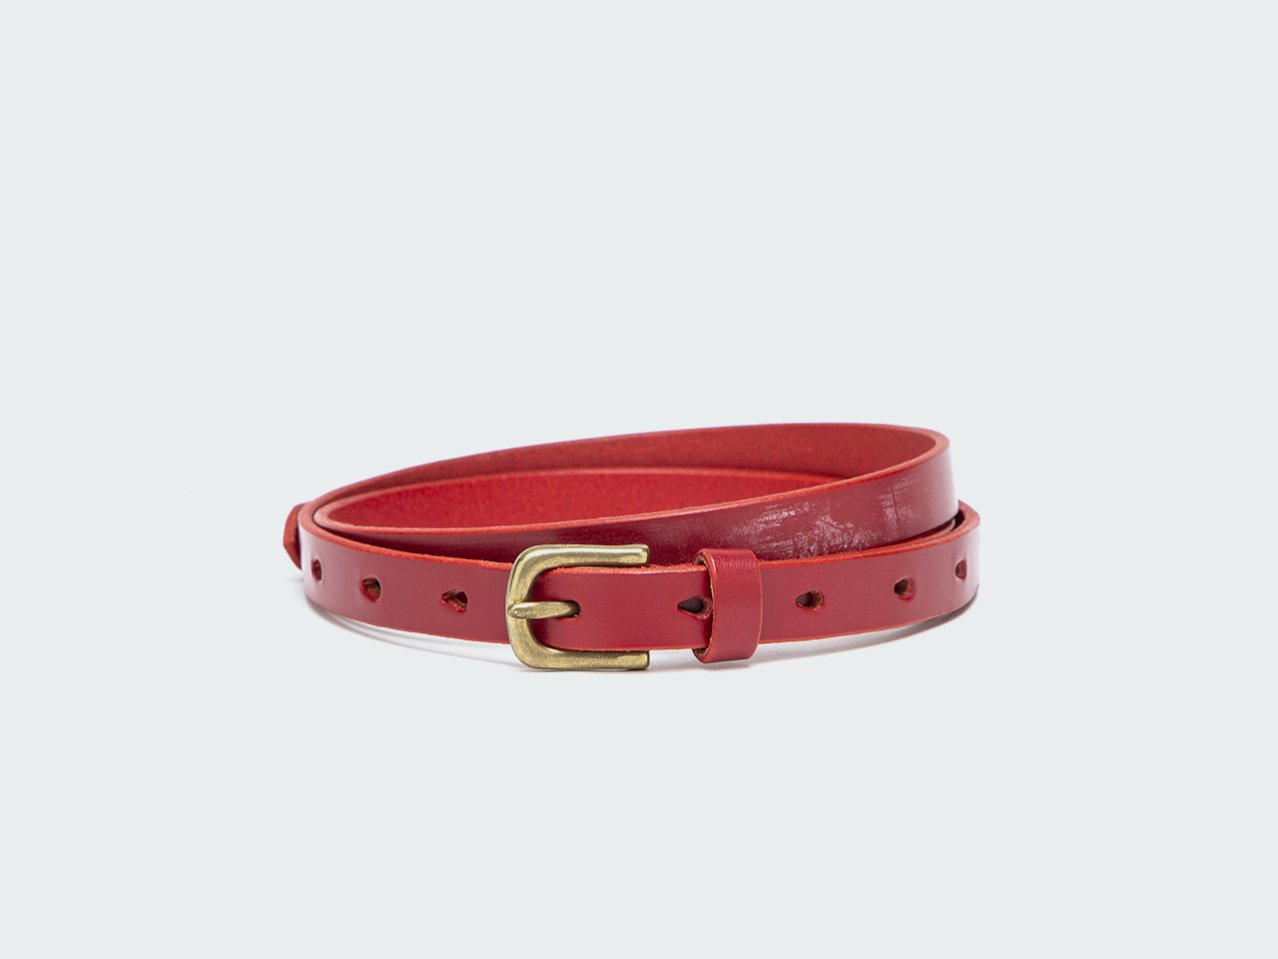 NARROW STANDARD (Bridle) 15 / RED